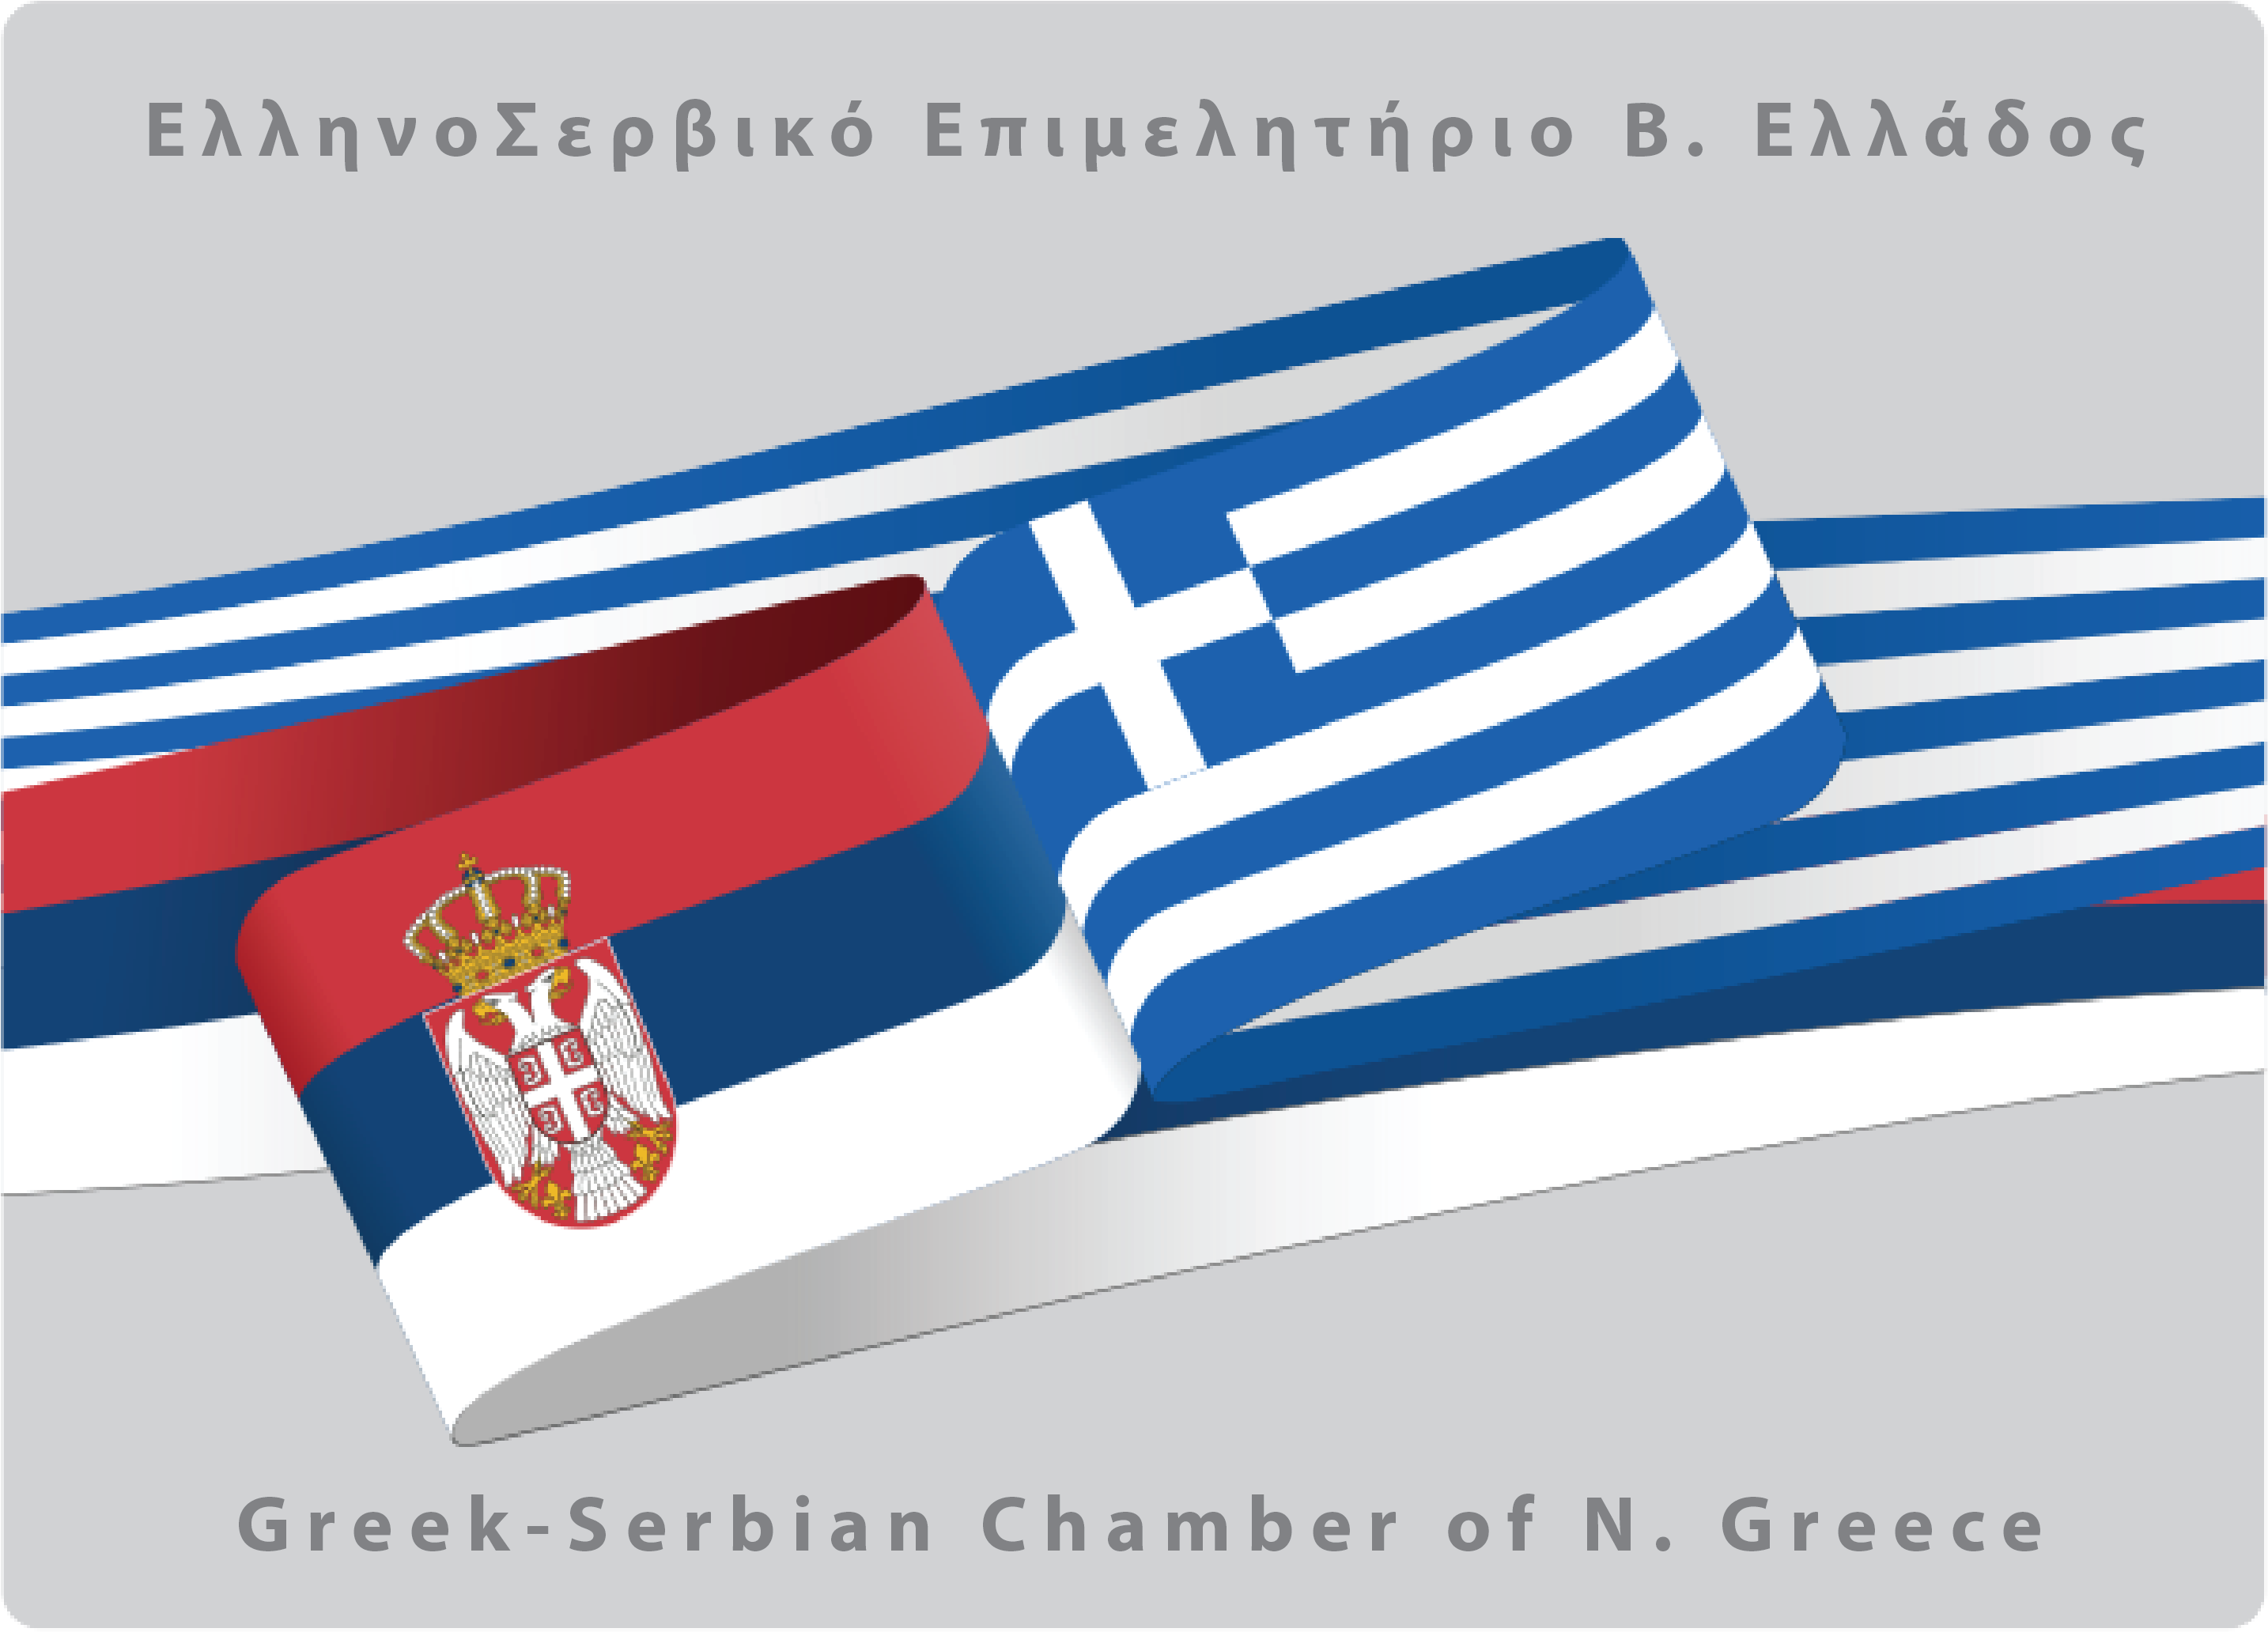 Greek Serbian Chamber of N. Greece